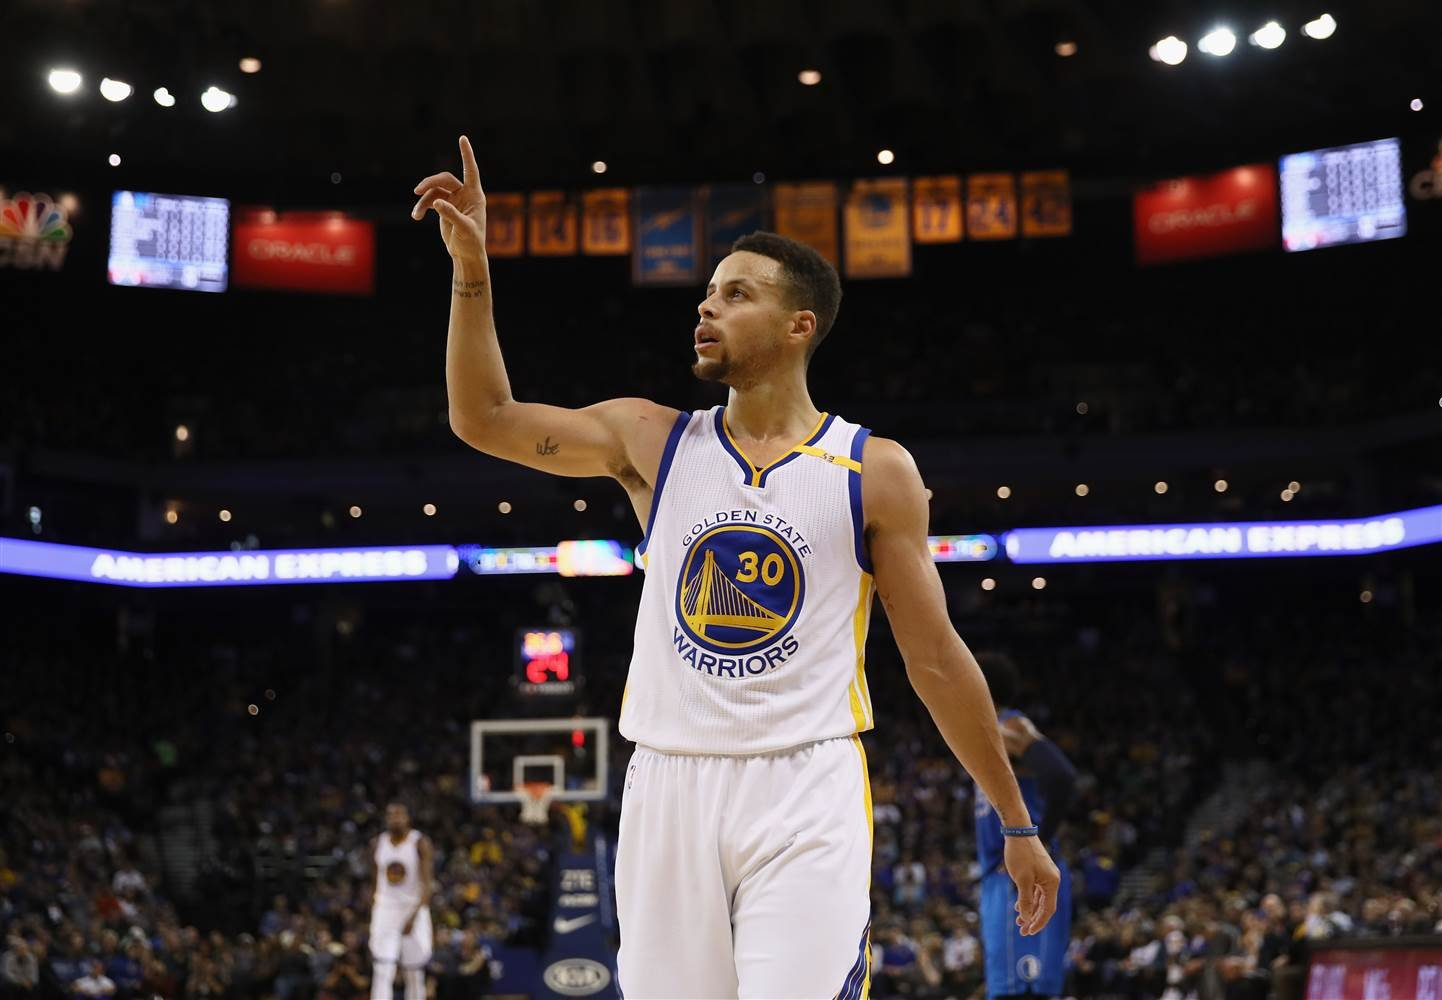 Stephen Curry of the Golden State Warriors reacts during their game against the Dallas Mavericks at ORACLE Arena. (Getty Images)